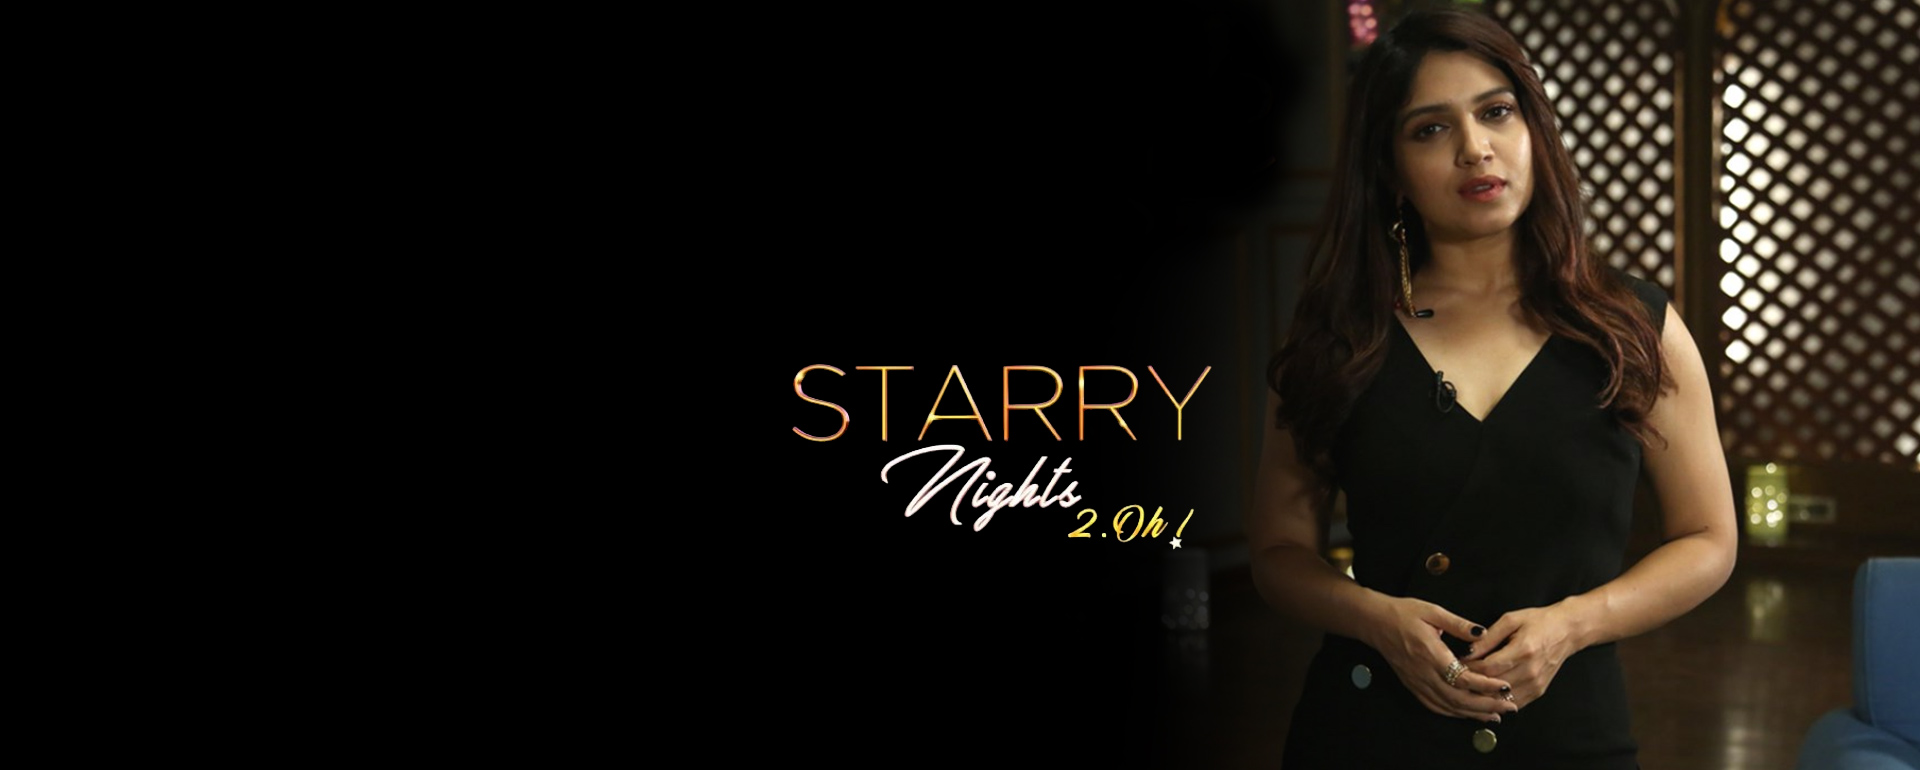 STARRY NIGHTS 2.0H!